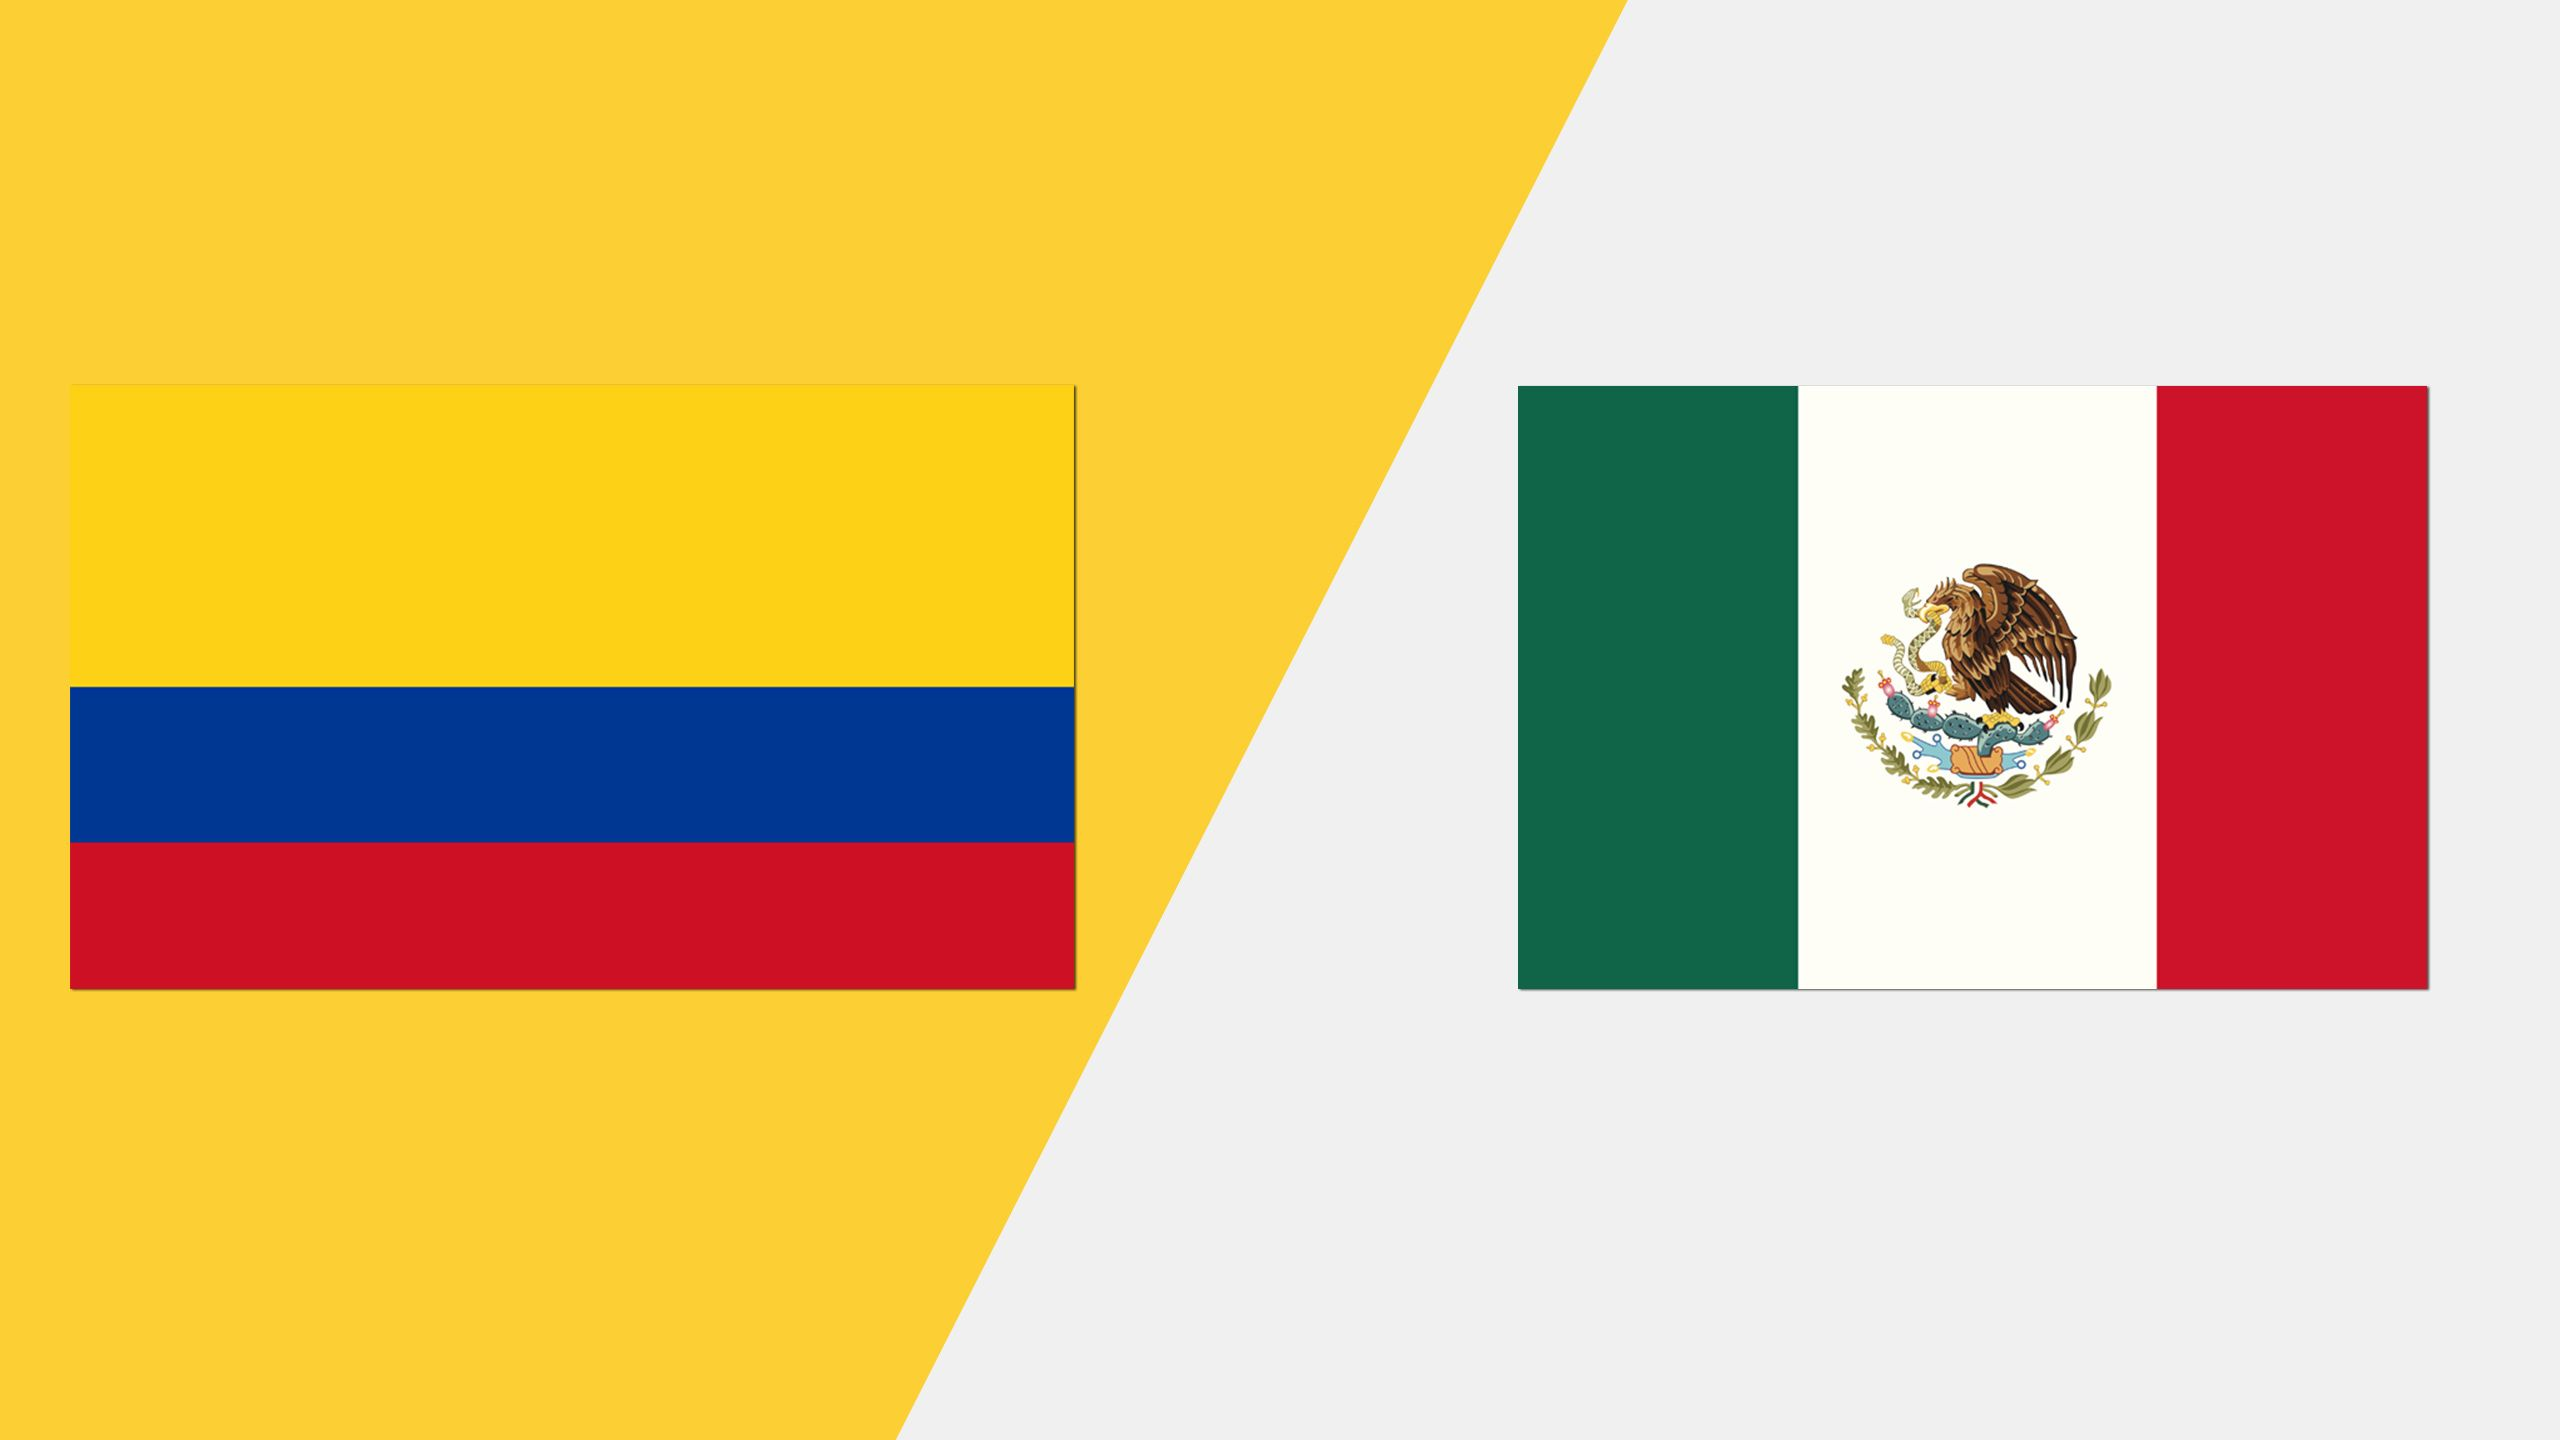 In Spanish - Colombia vs. México